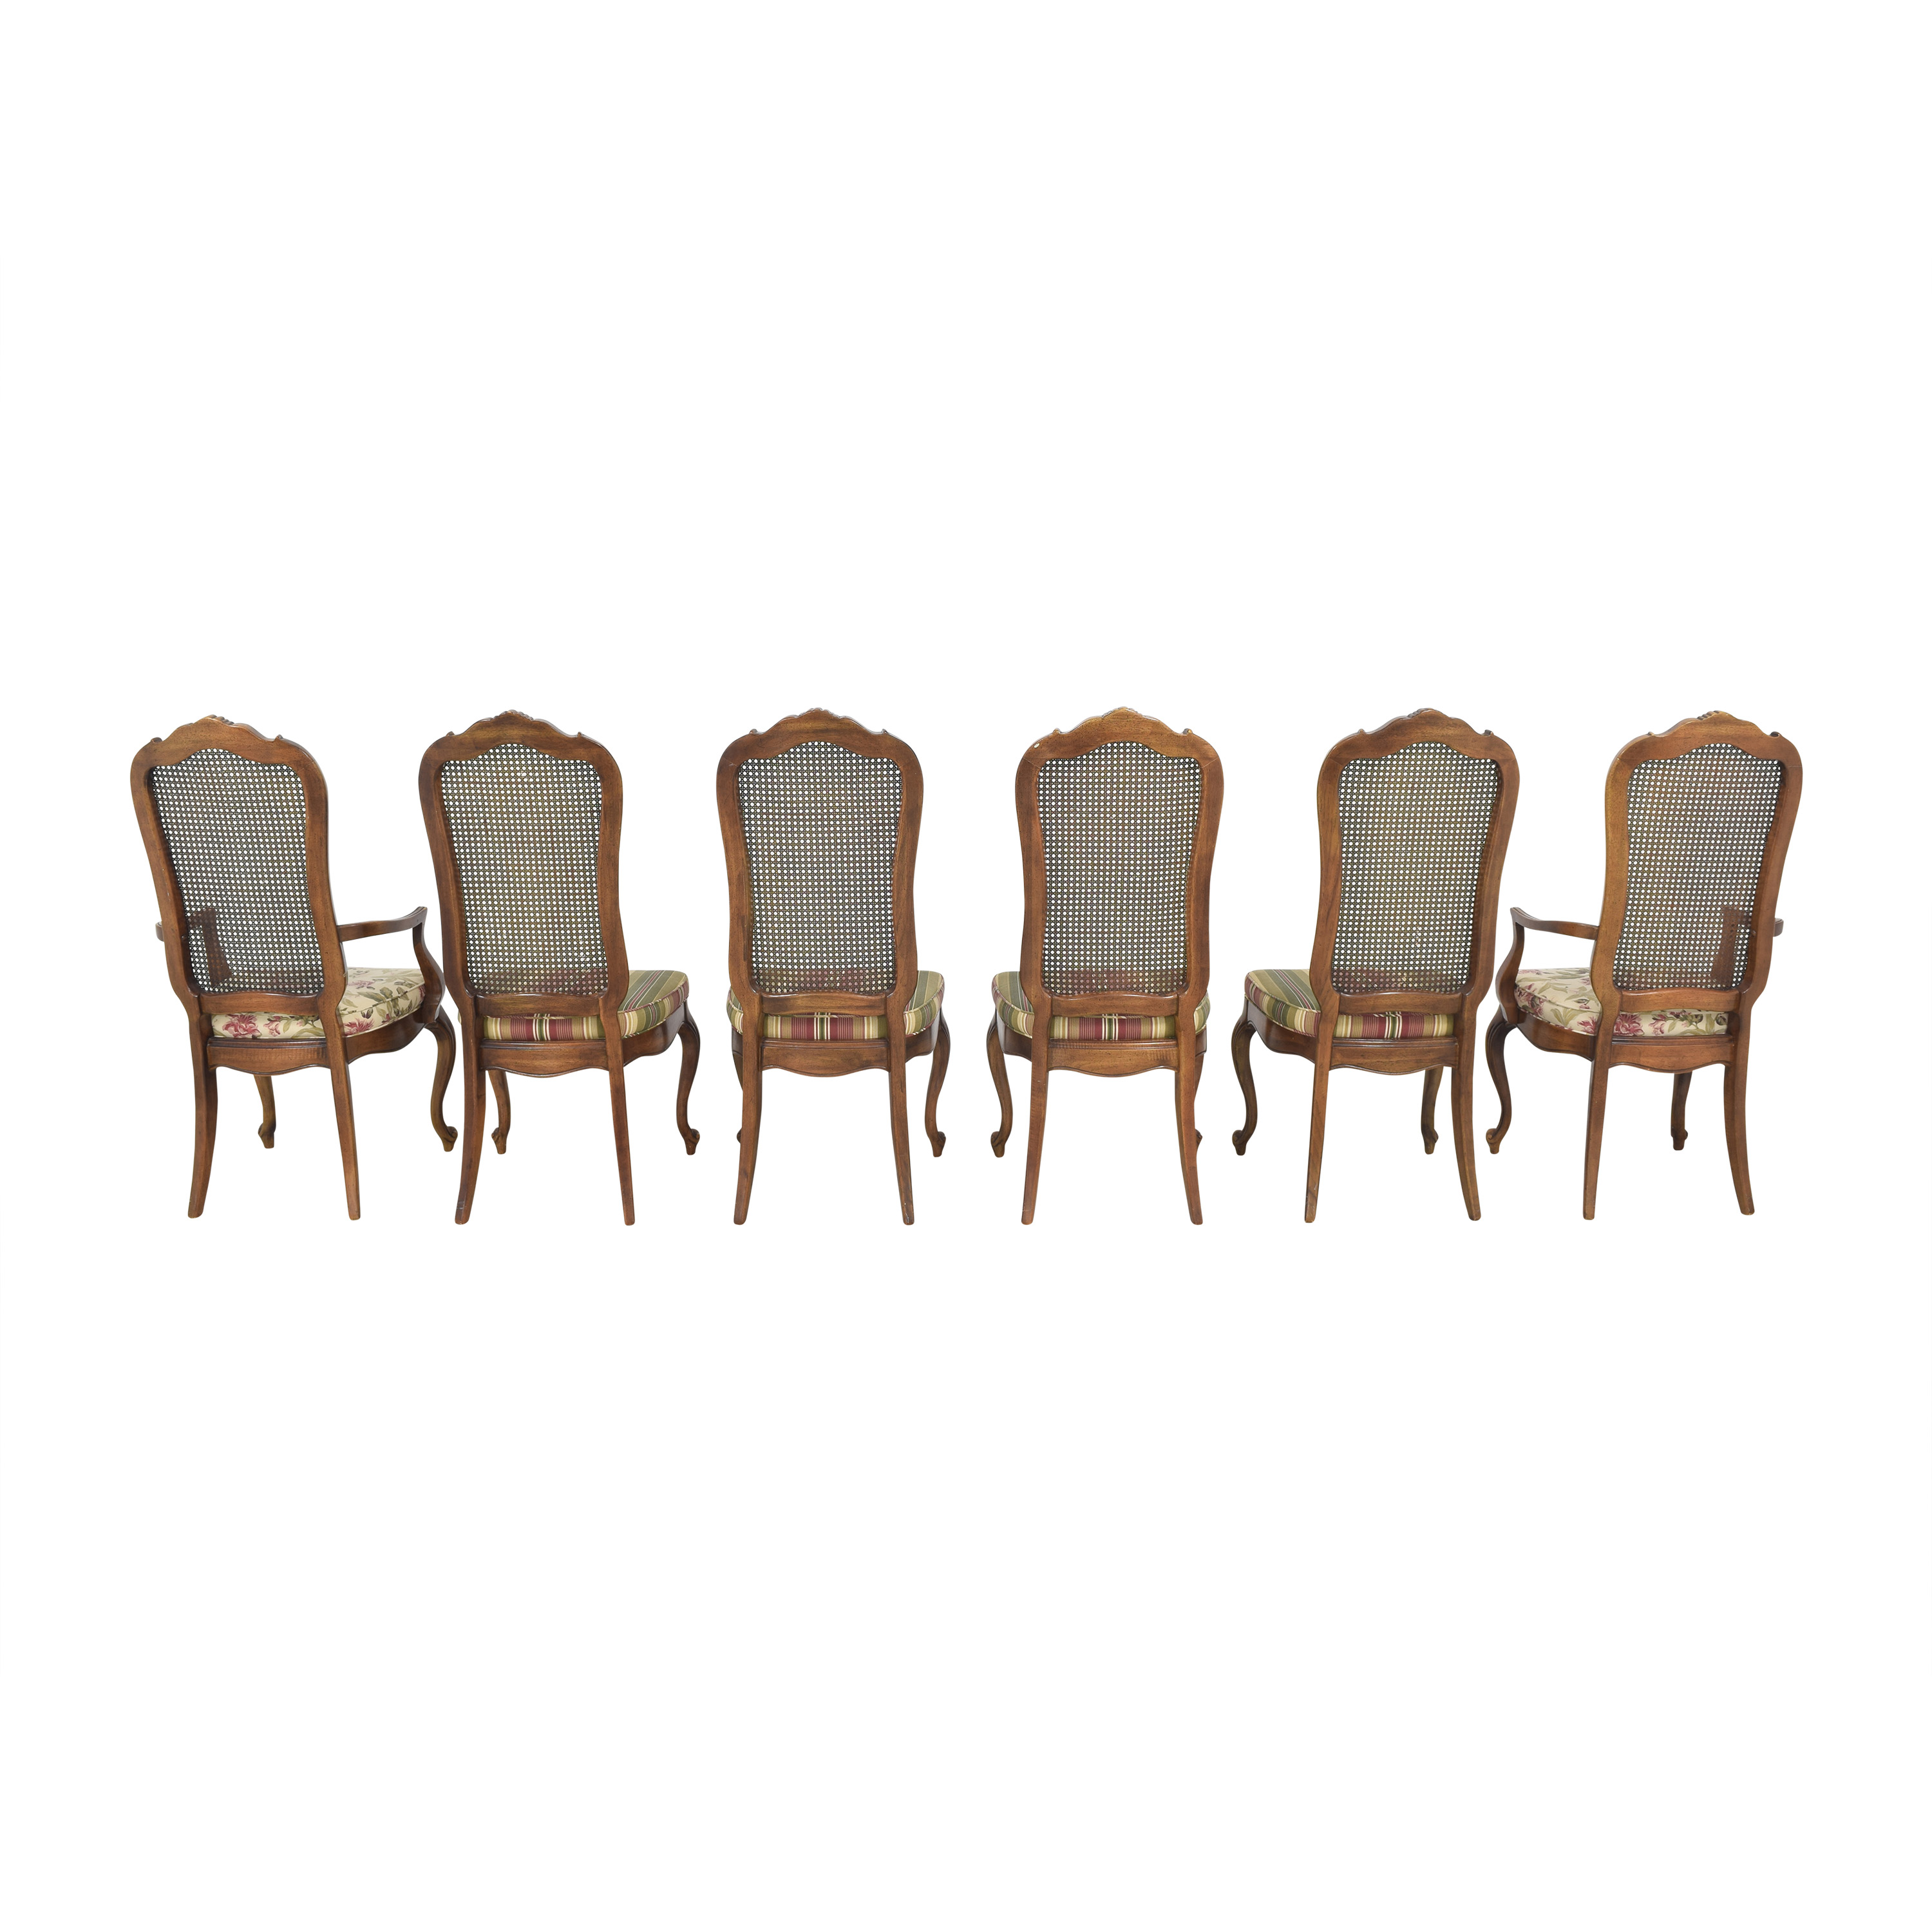 Thomasville Thomasville Cane Back Dining Chairs discount